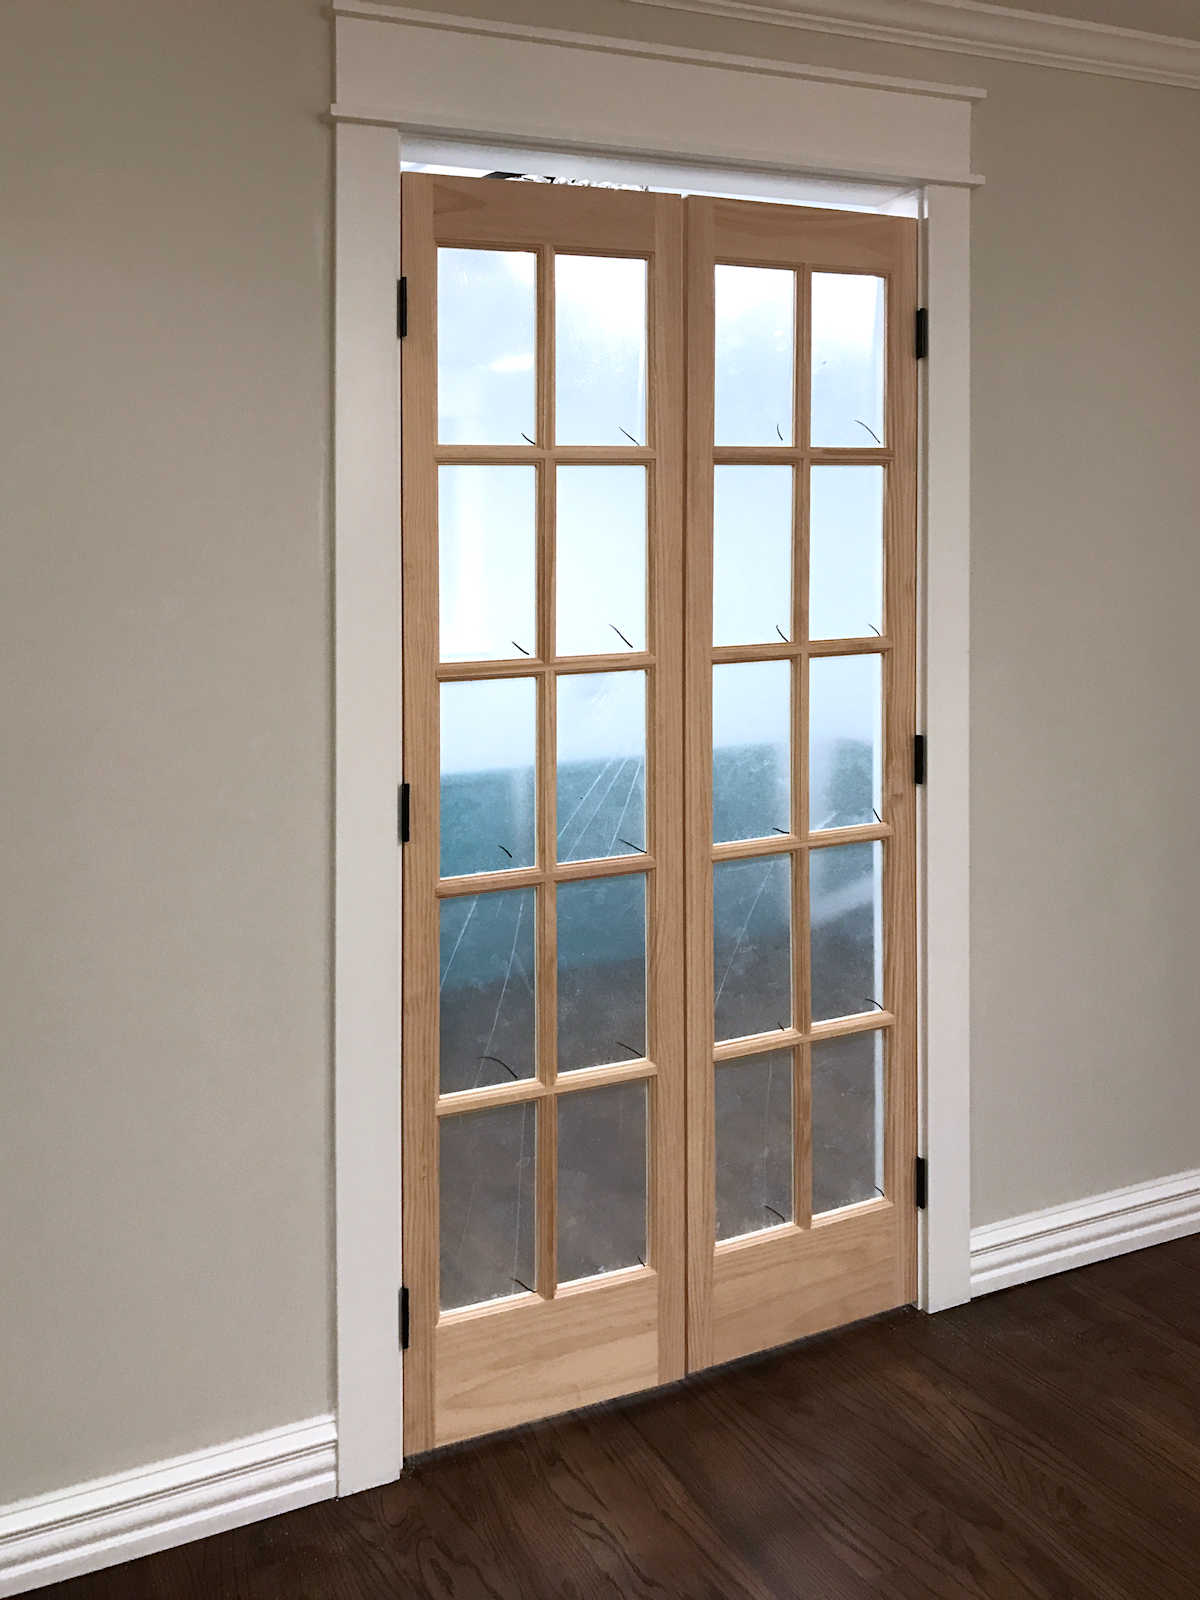 Pantry French Doors   8   Bifold Closet Doors Installed As French Doors,  Adjustments To